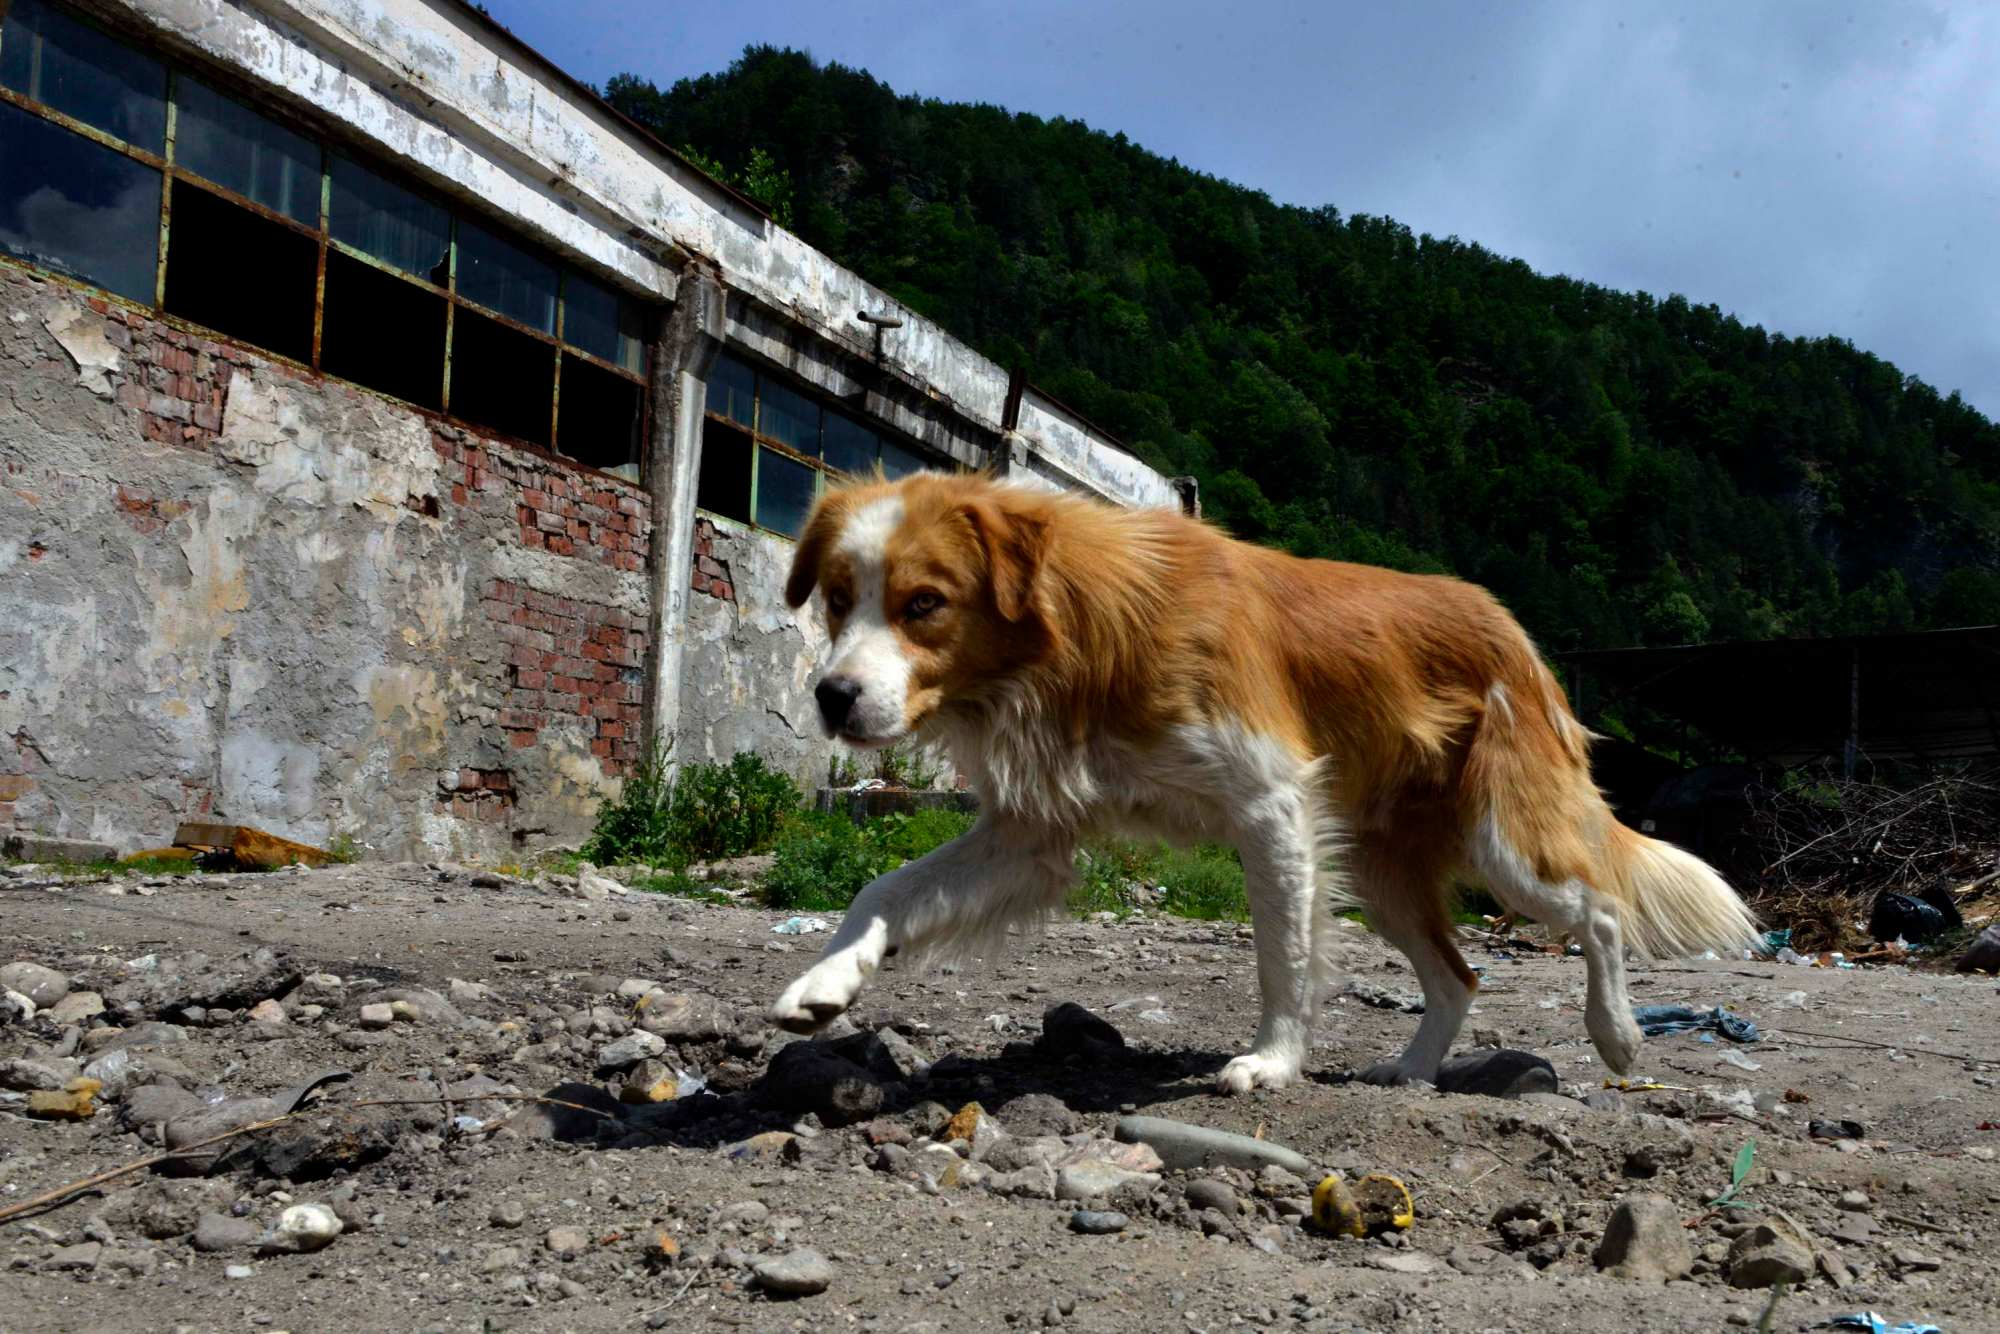 Romania, Brezoi   2014 06 02   Stray dogs are pictured in Brezoi, Romania, on June 2, 2014. FOUR PAWS animal welfare organization started in May 2014 a Stray Animal Care (SAC) project in different Romanian cities.